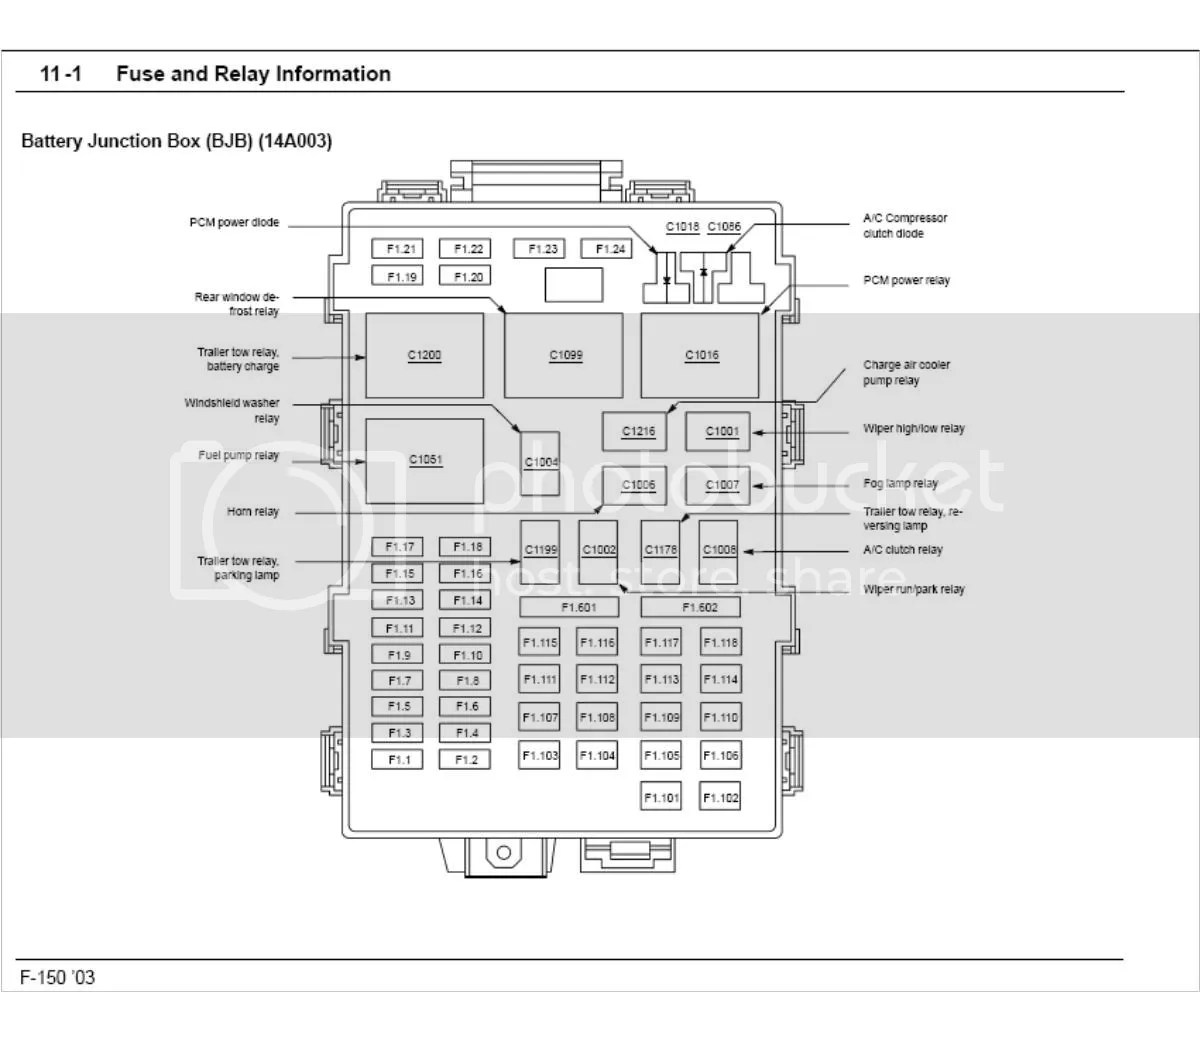 hight resolution of fuse box diagram for 99 ford f150 just wiring diagram 1999 ford f 150 fuse box designs